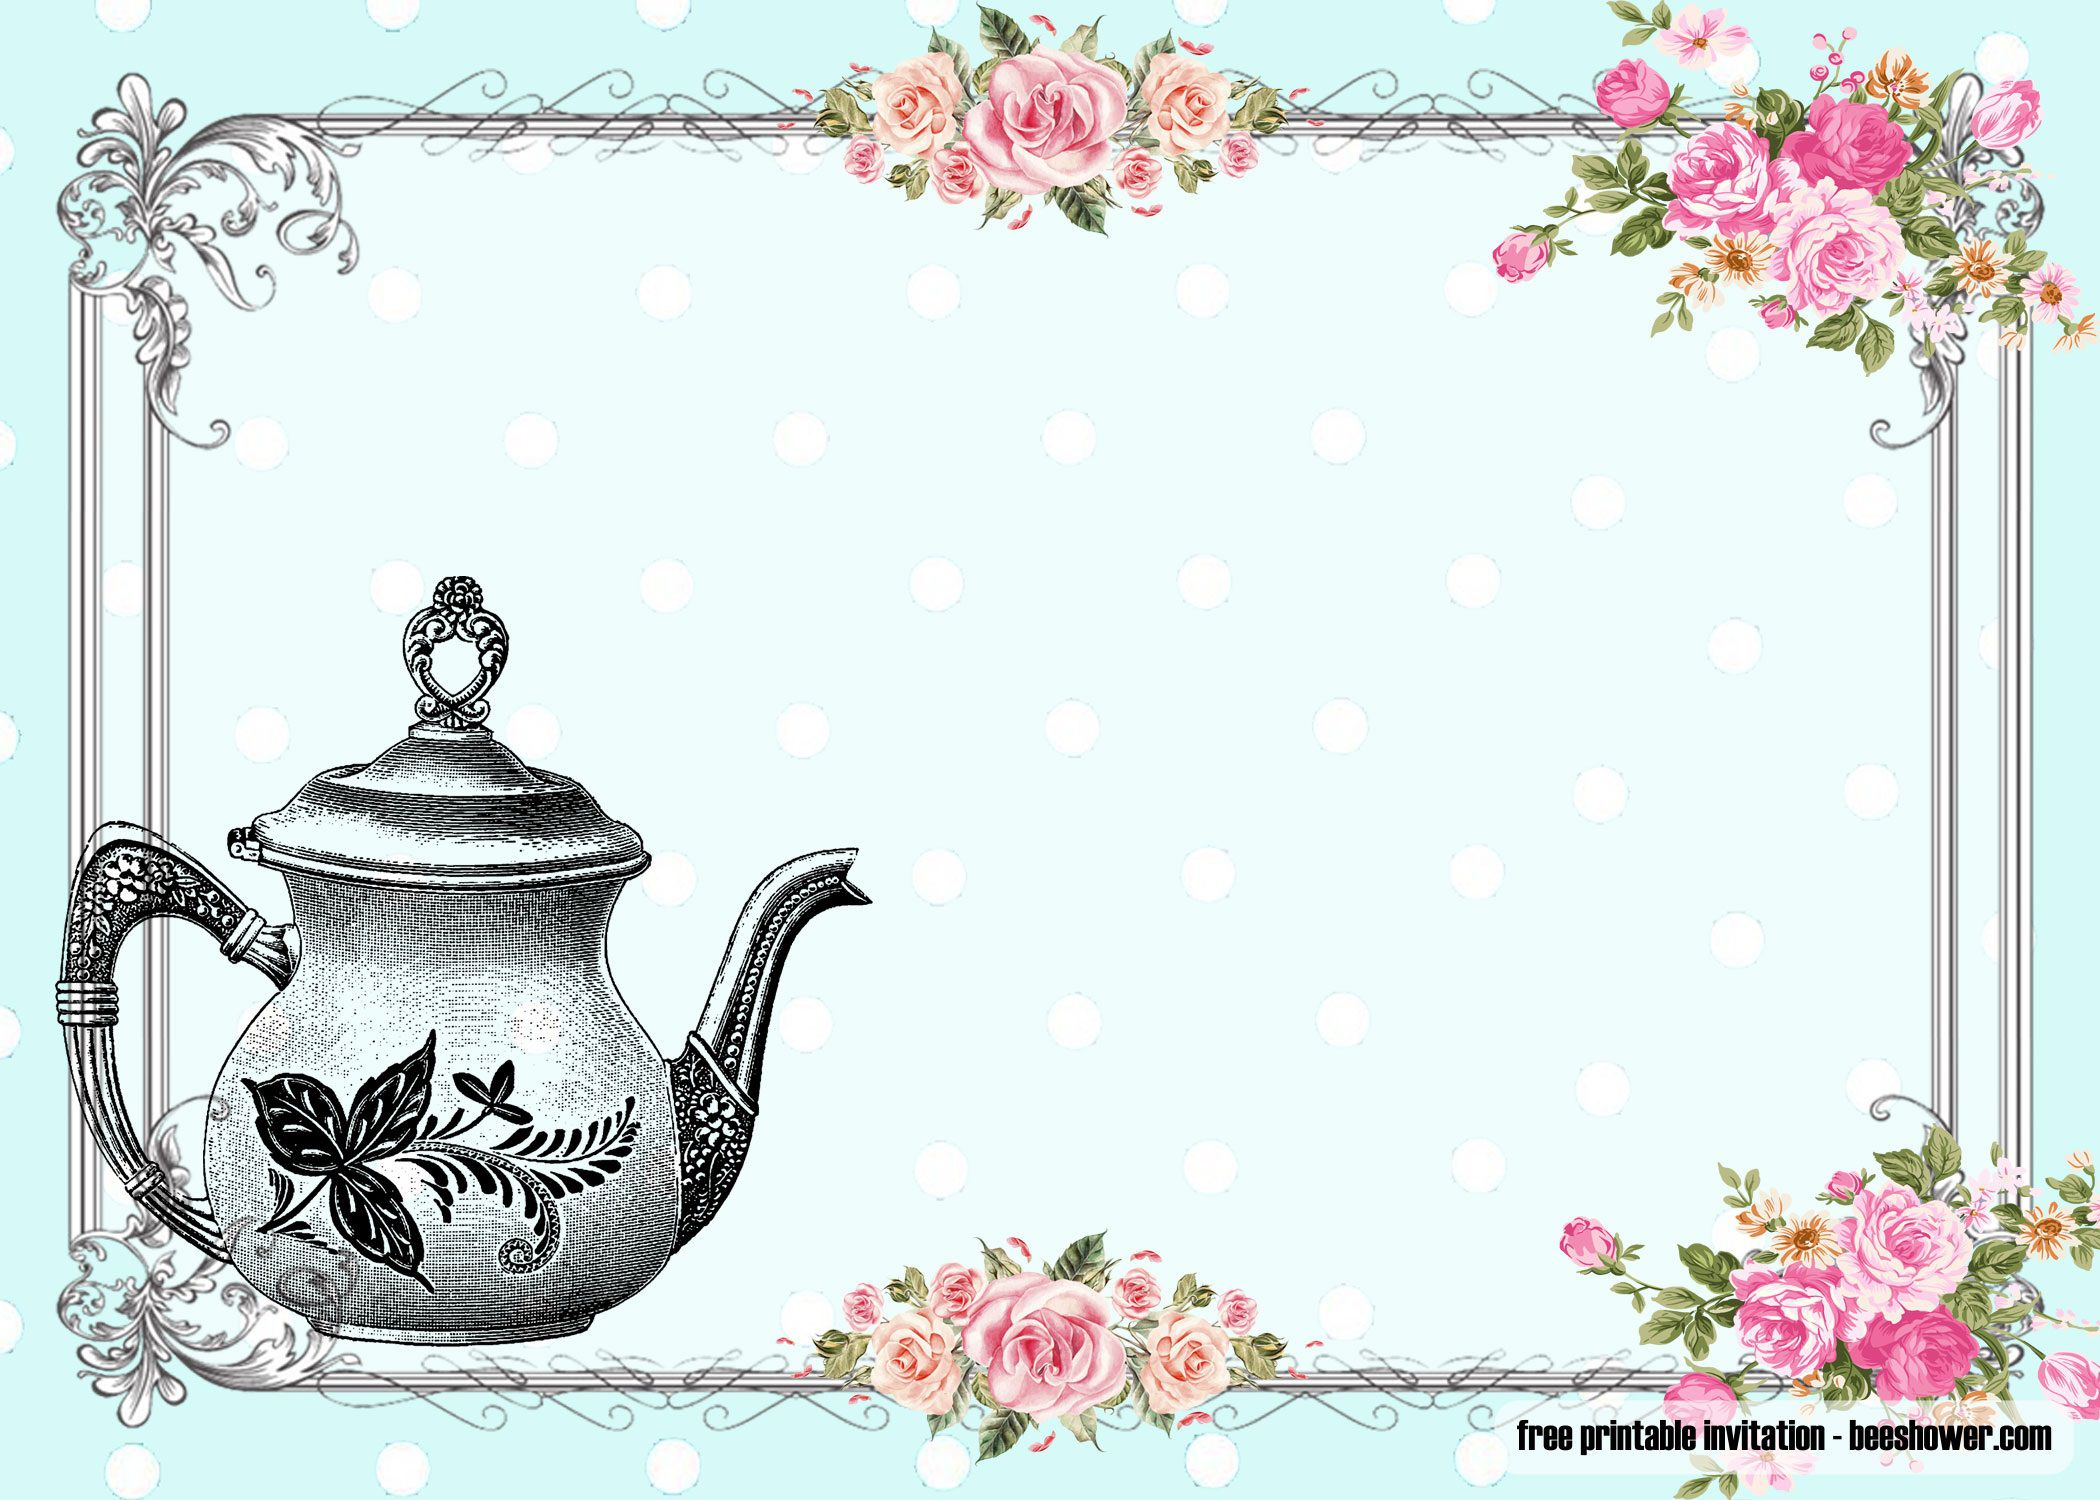 010 Awful Tea Party Invitation Template Idea  Online LetterFull